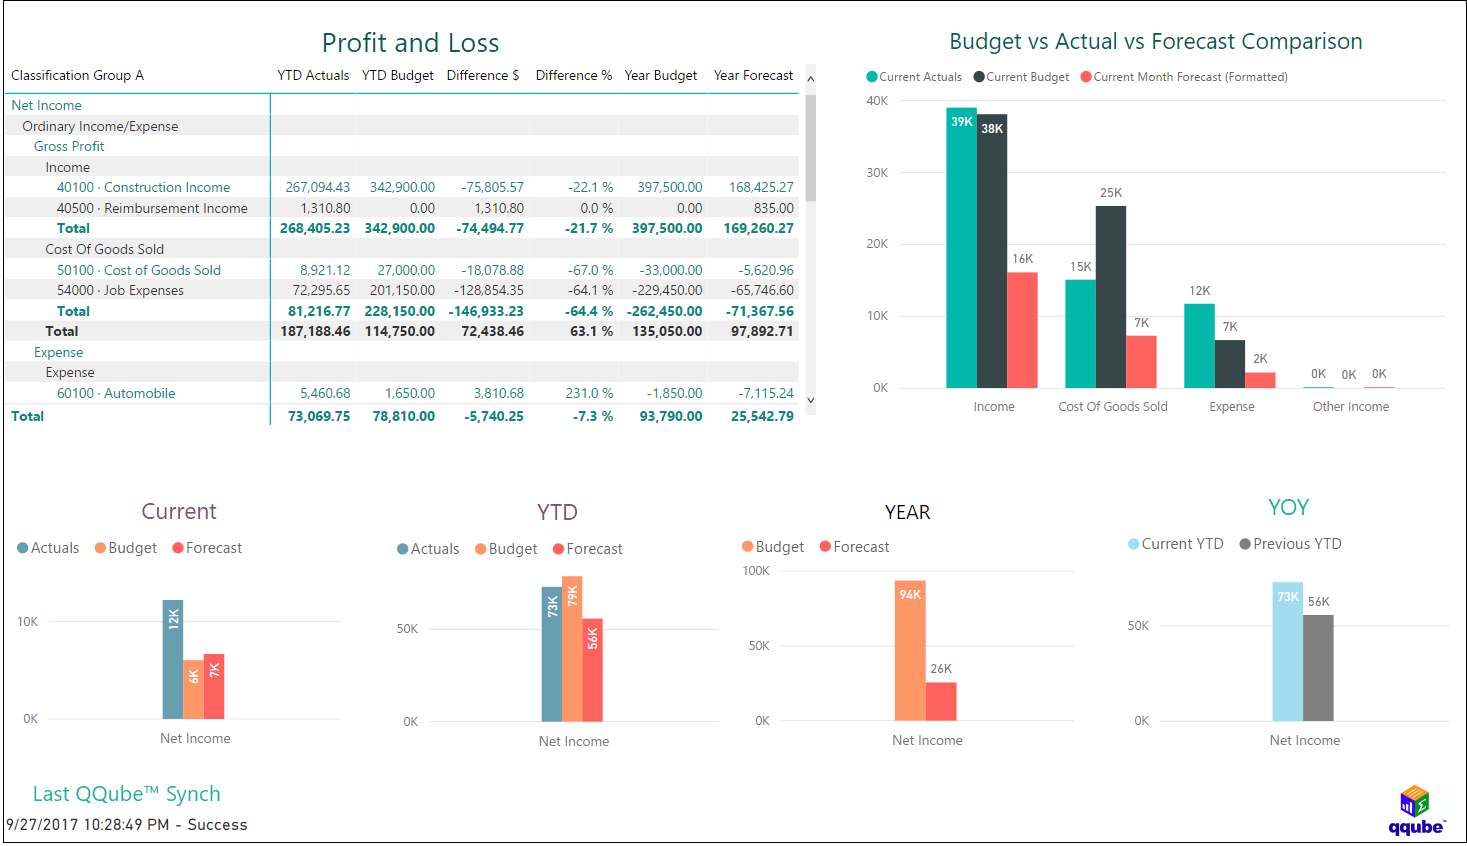 QQube and Power BI - Profit and Loss with Budget, Forecast, Actuals